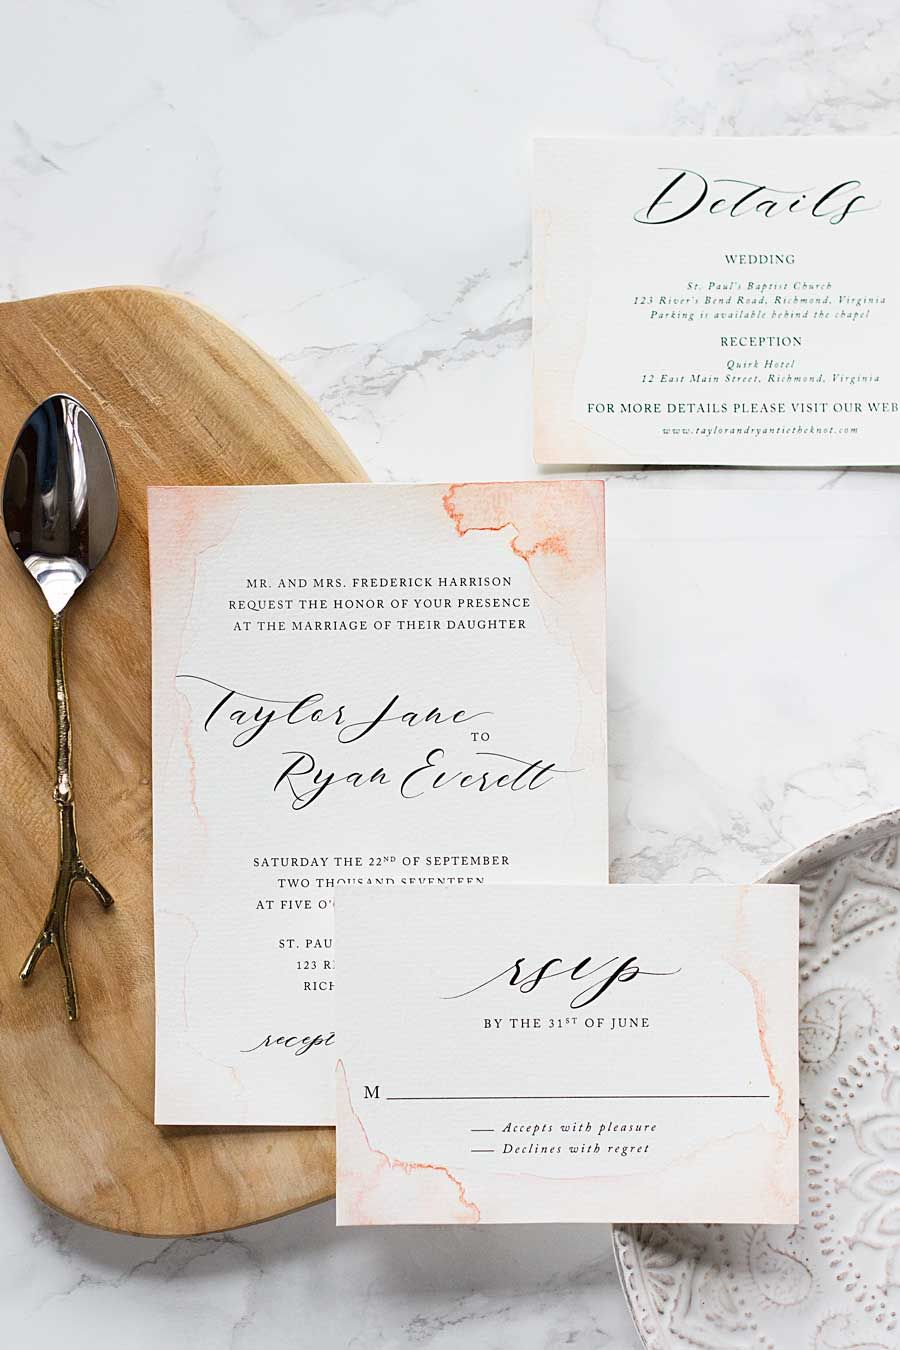 How to paint your own watercolor wedding invitations on a budget and ...